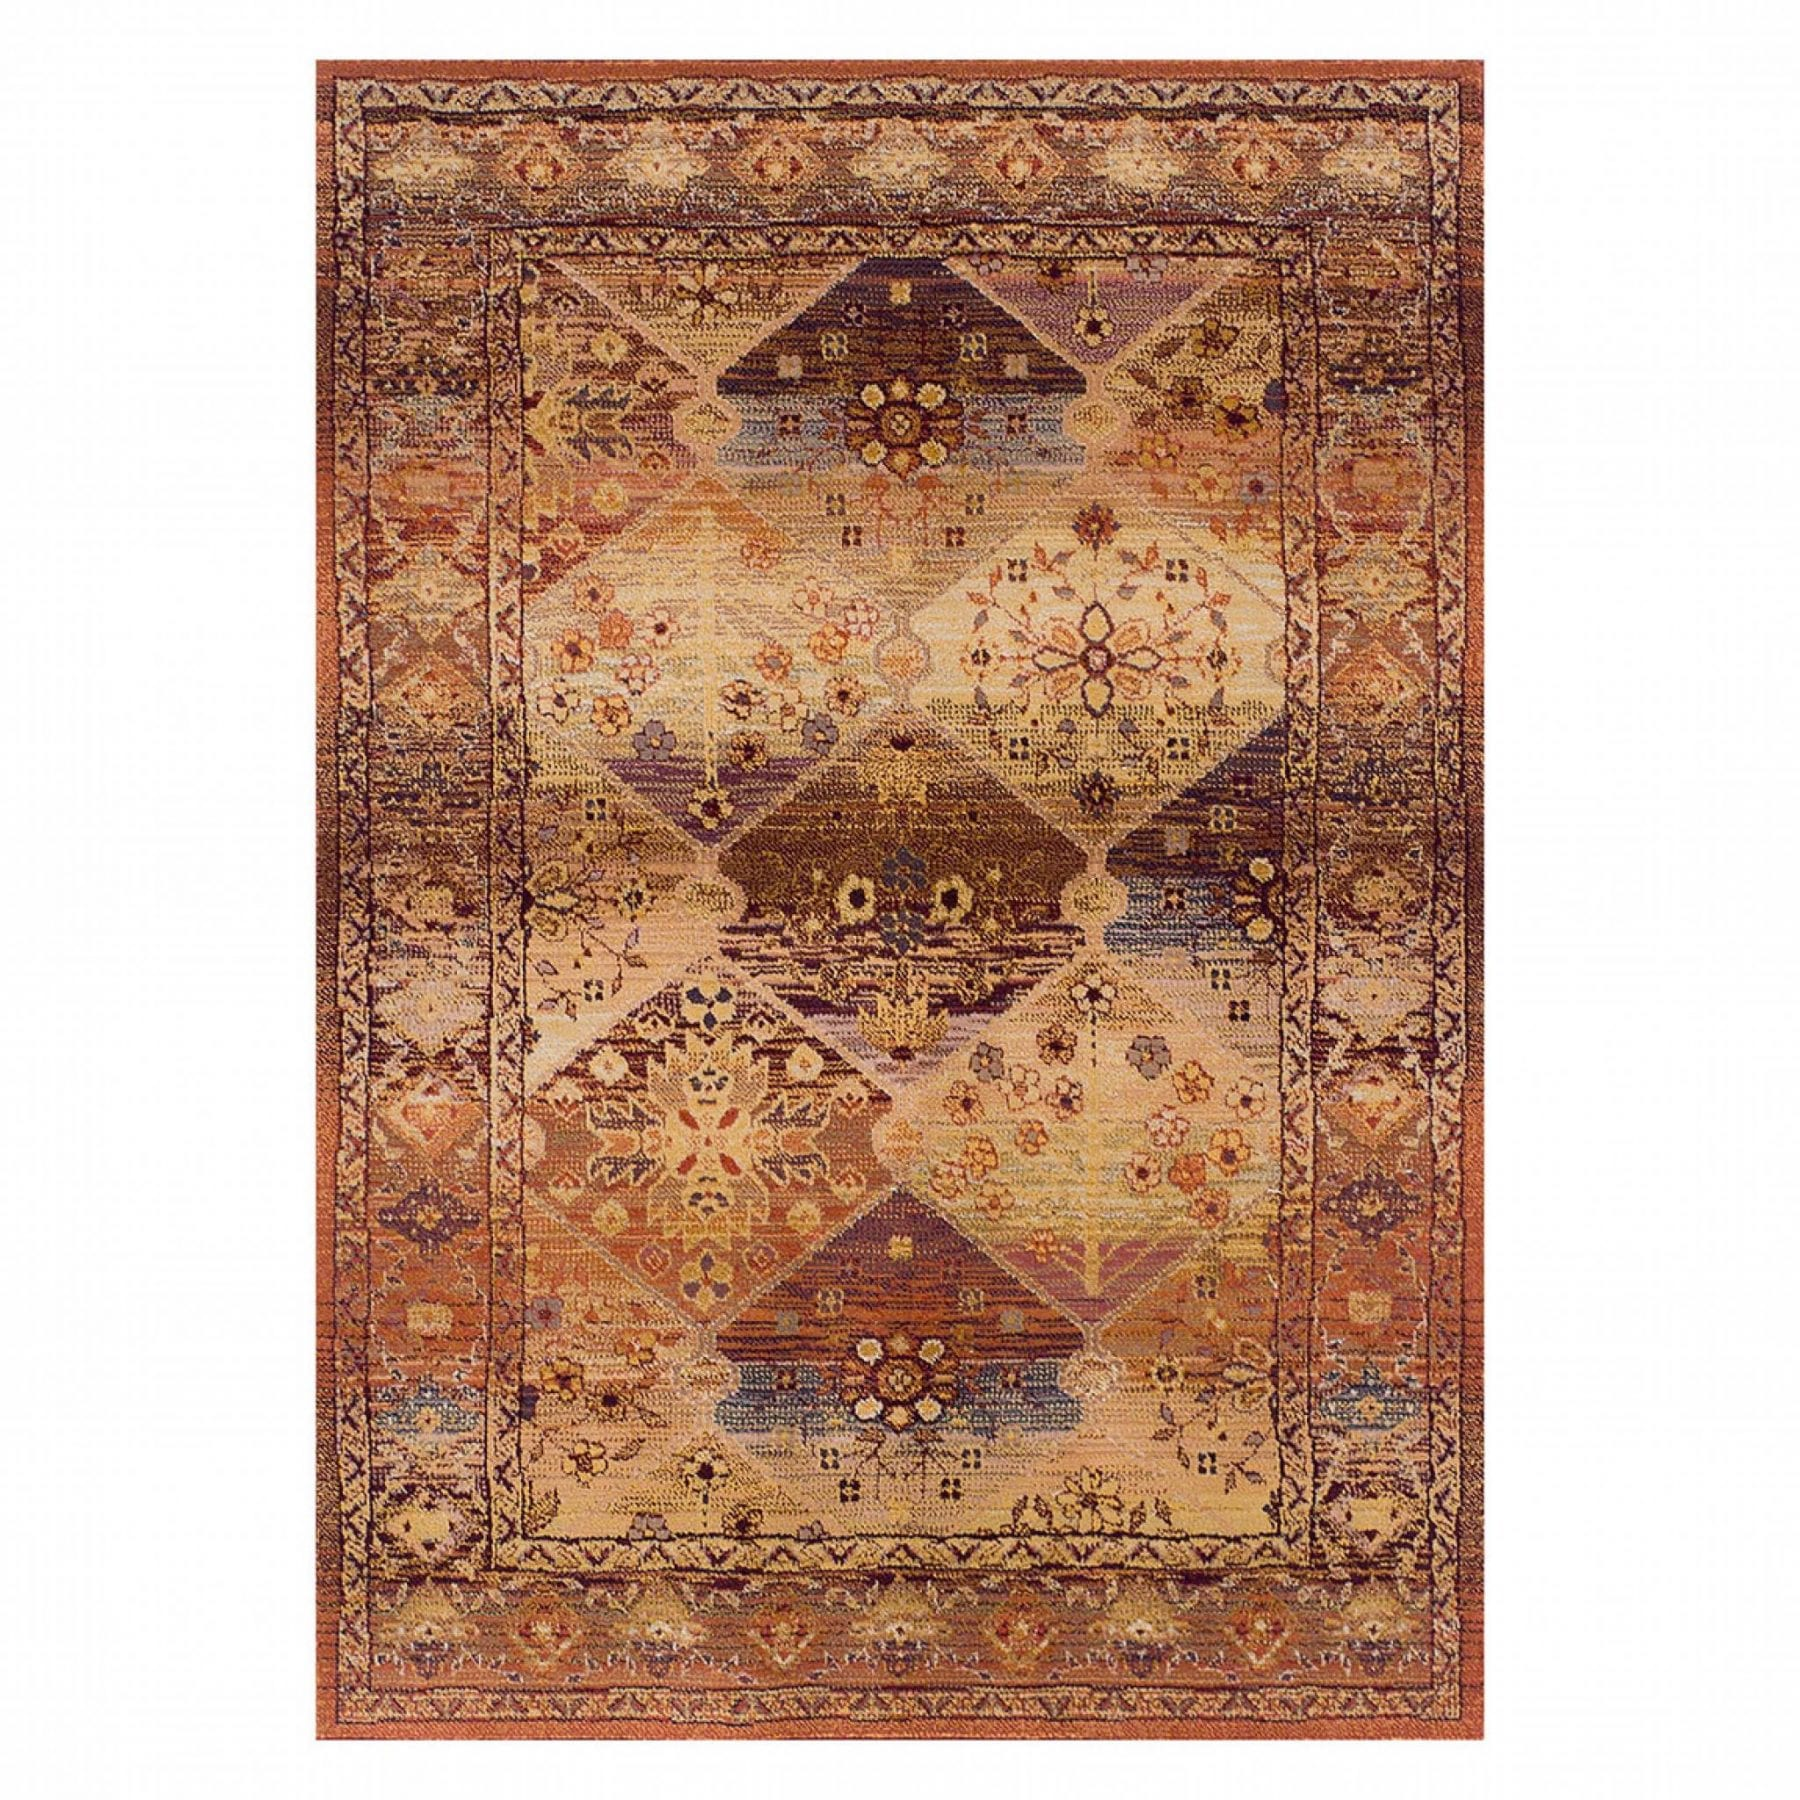 Gabbeh Large Persian Rug Traditional Persian Design Rug